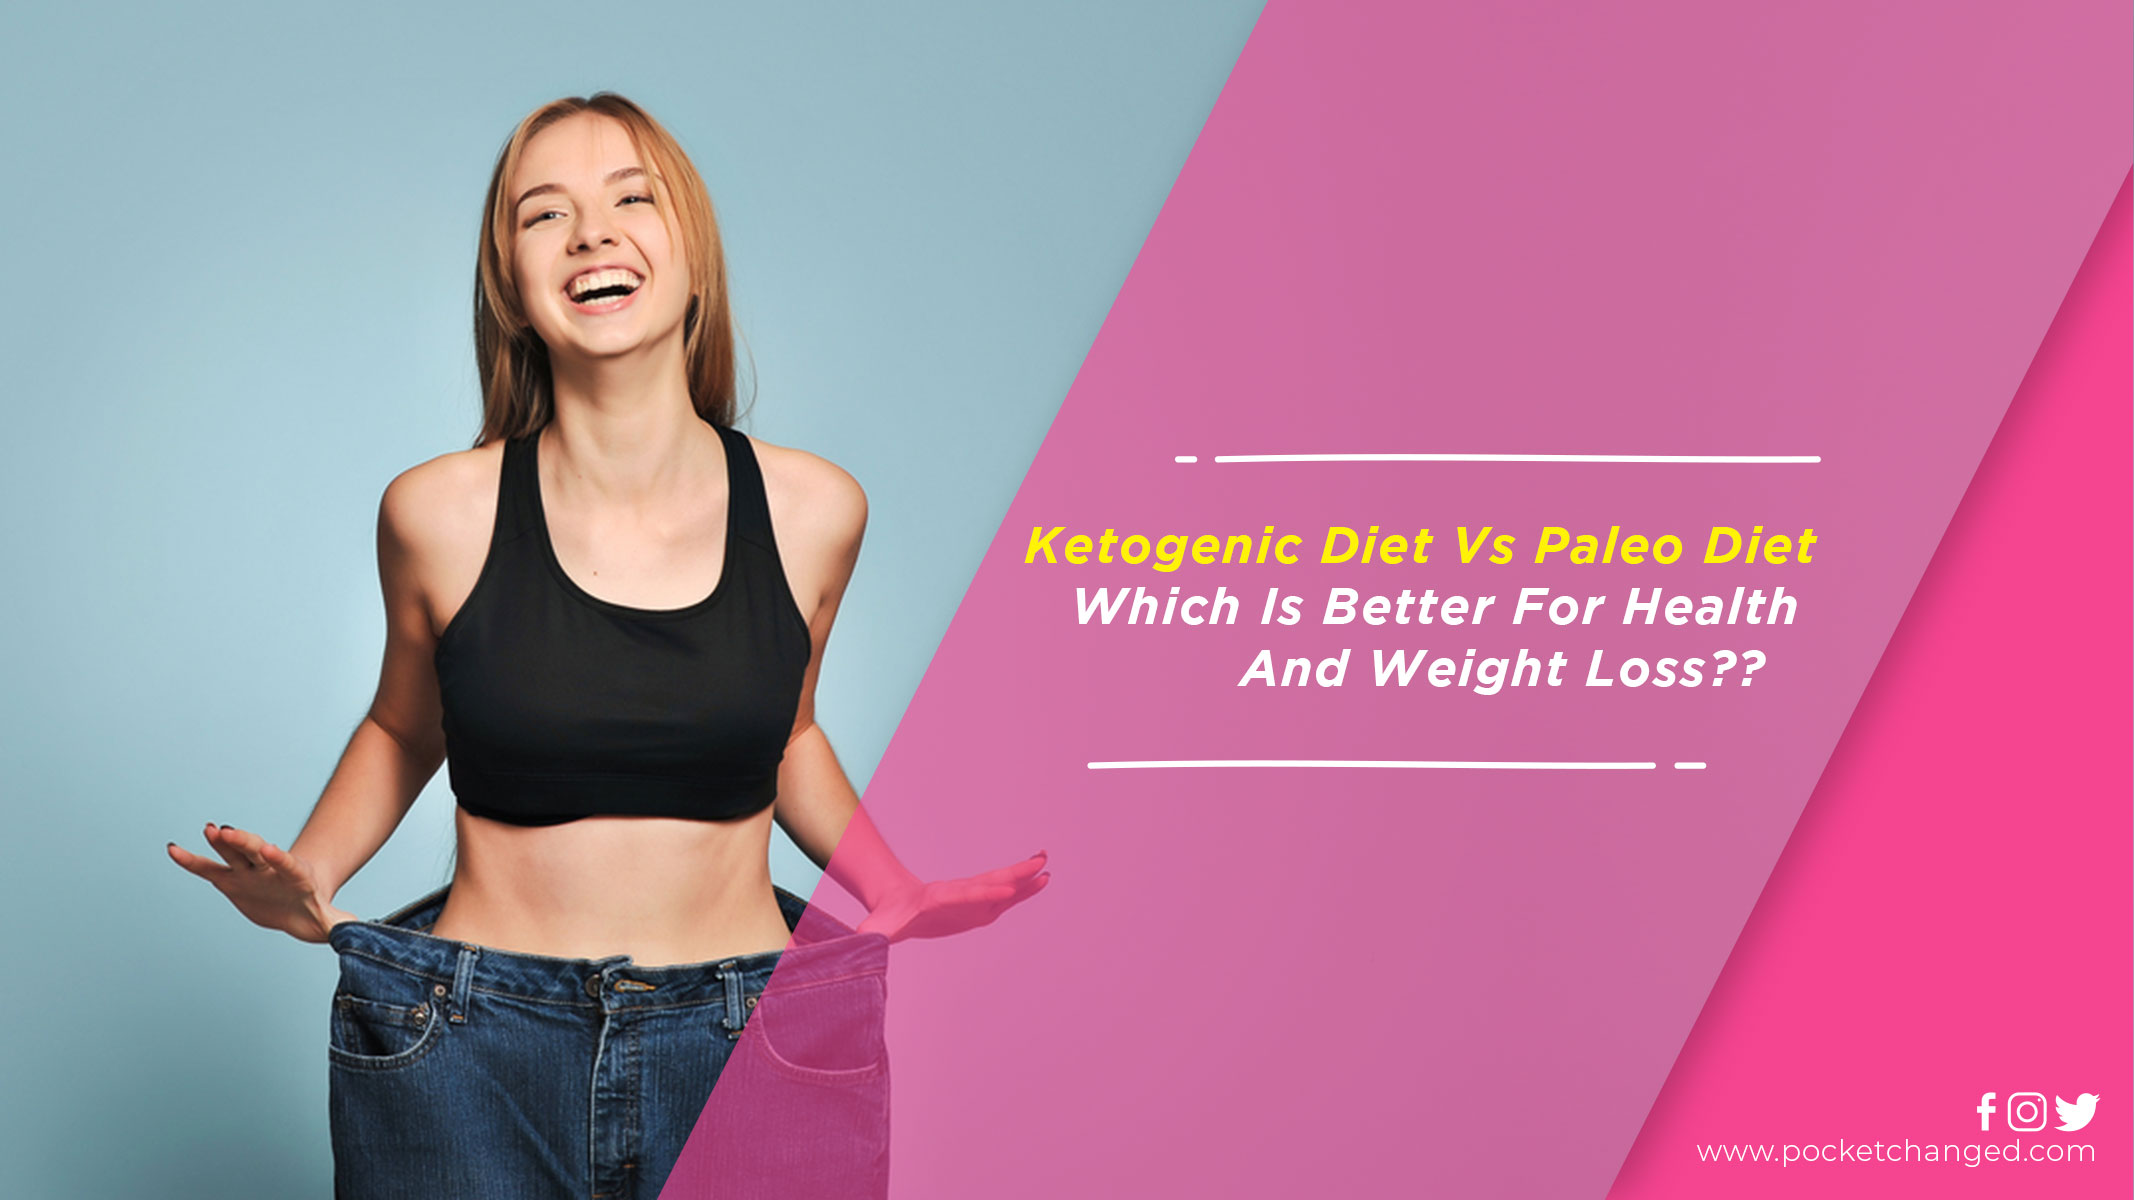 Ketogenic-Diet-Vs-Paleo-Diet--Which-Is-Better-For-Health-And-Weight-Loss